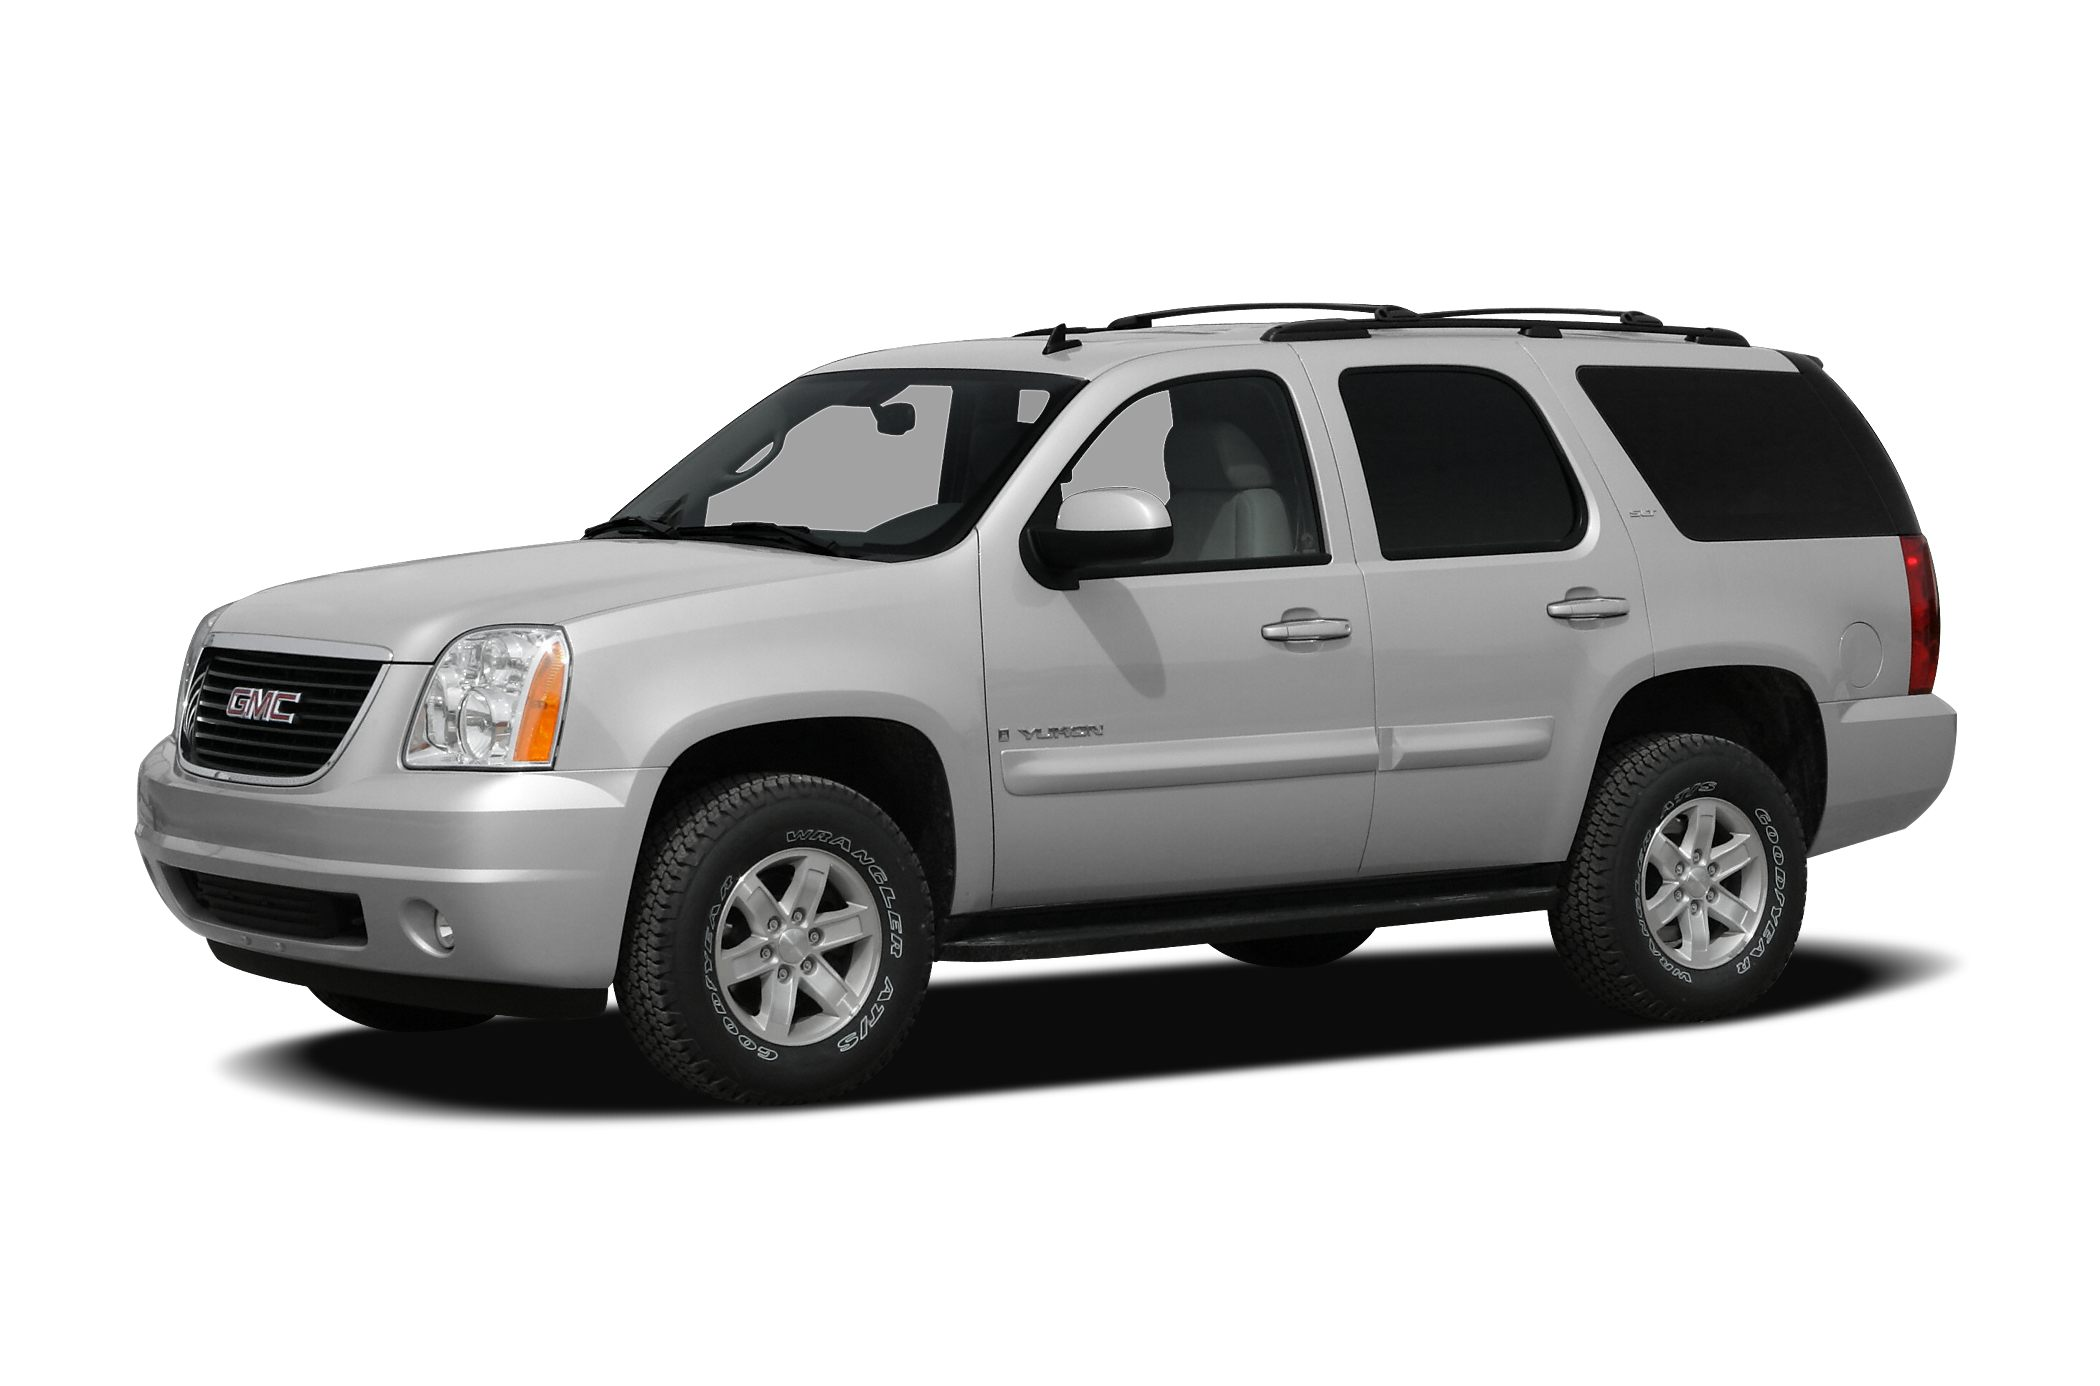 2011 GMC Yukon SLT Come experience a whole new way of buying pre-owned At Paul Masse we strive f